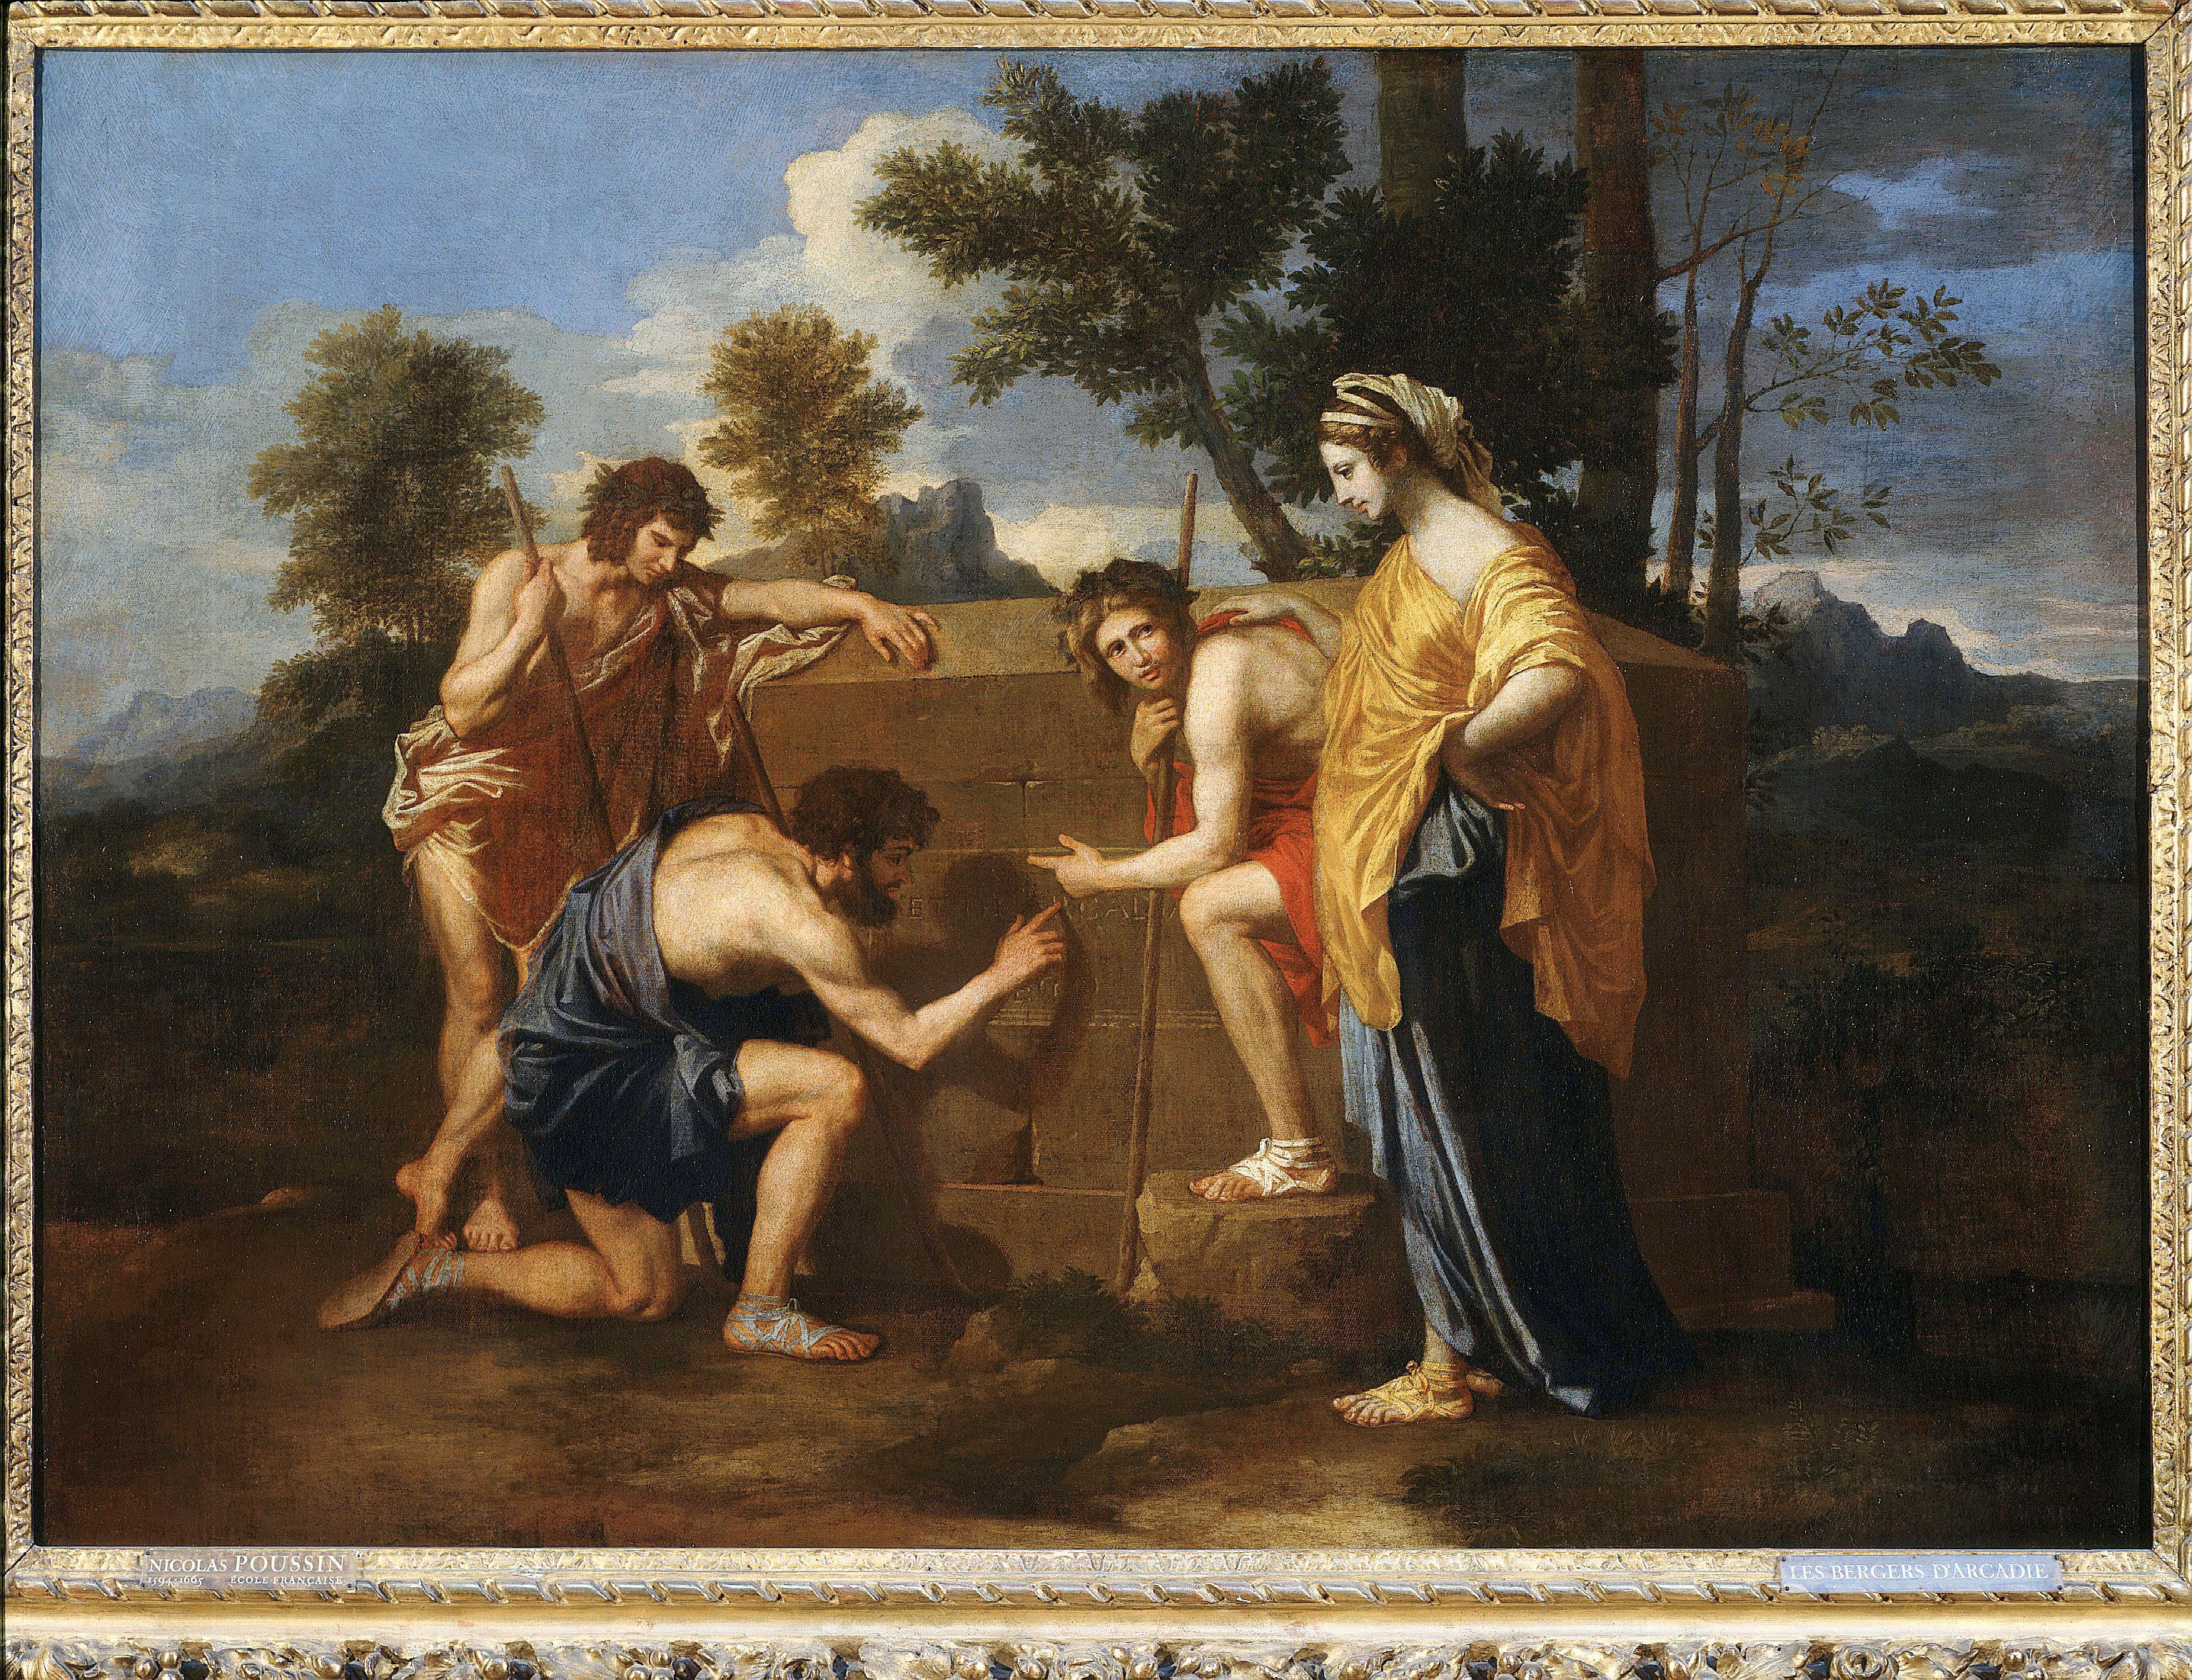 Les bergers d'Arcadie (shepherds of Arcadia), also called Et in Arcadia Ego (Nicolas Poussin)Art (Paintings) - various Artist: POUSSIN, Nicolas (1594-1665, French ) Location: Musée du Louvre Paris